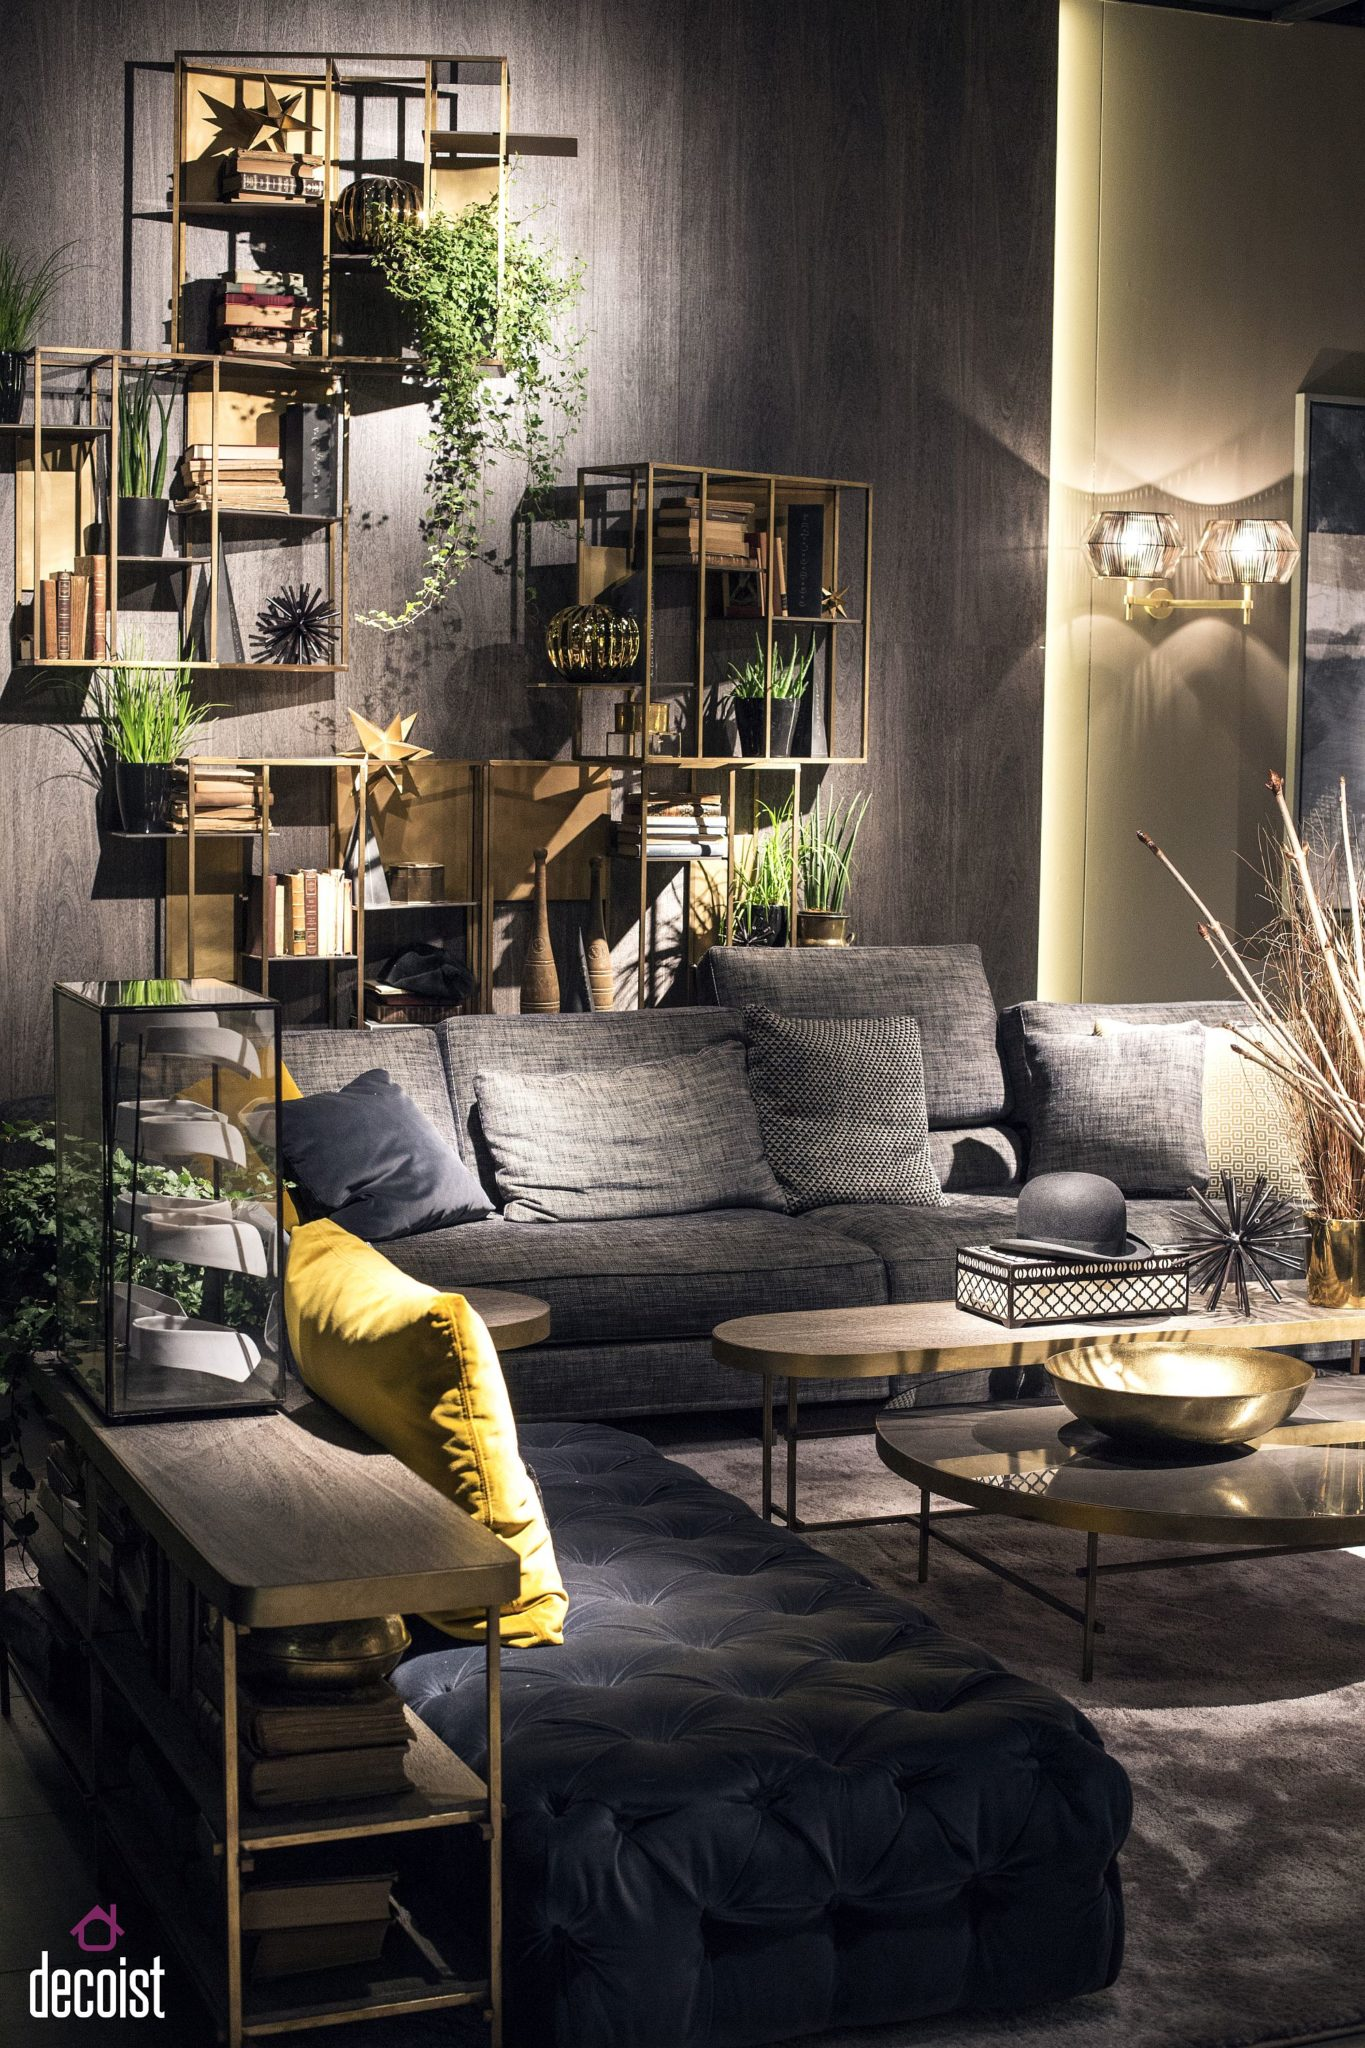 Fabulous living room design idea makes complete use of vertical space on offer